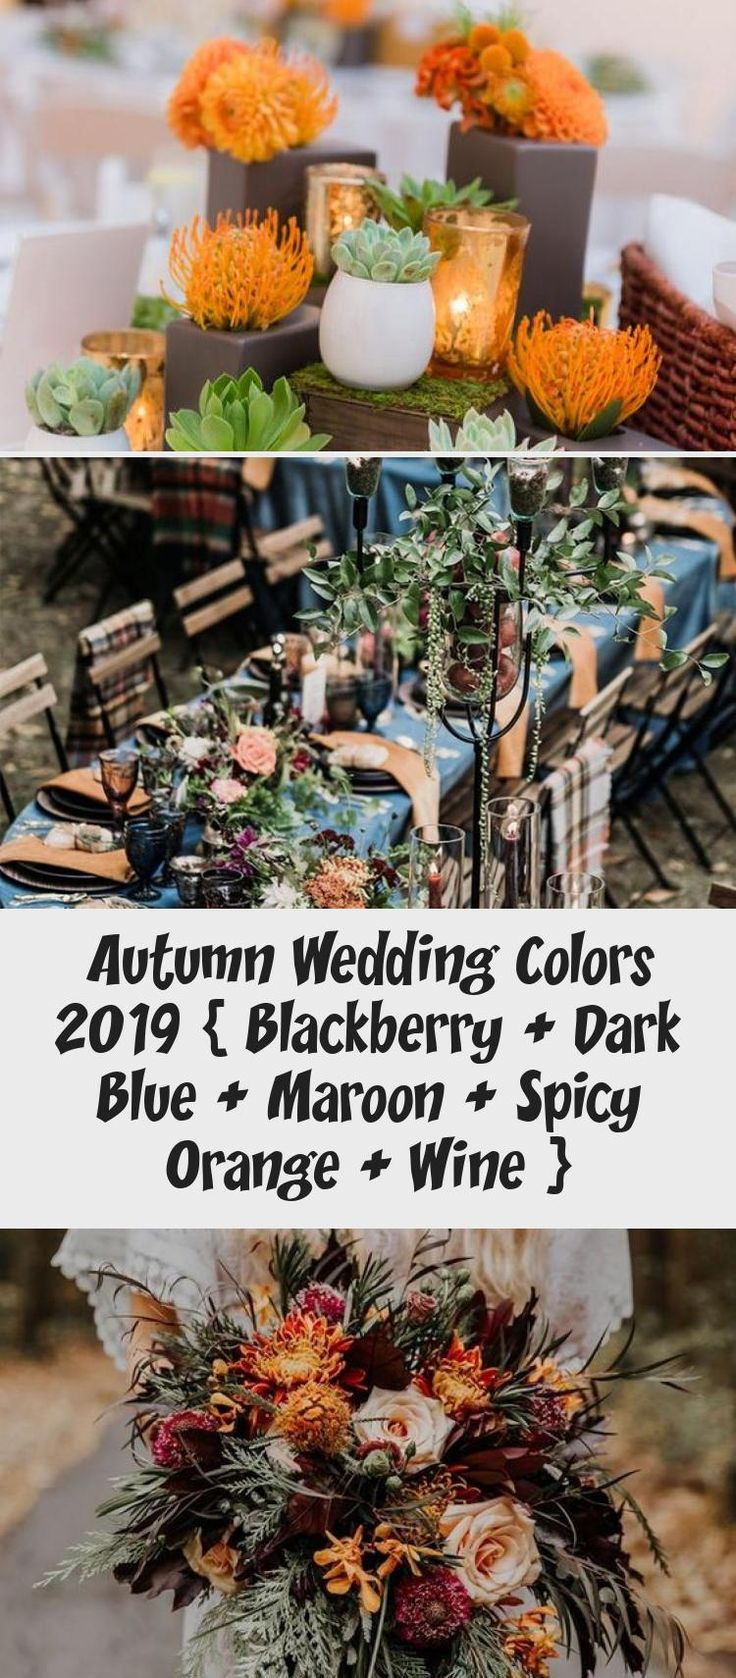 Autumn wedding colors 2019 { Blackberry + Dark Blue + Maroon + Spicy Orange + Wine } #color #fall #autumn #wedding #BridesmaidDressesSequin #BridesmaidDresses2019 #ModestBridesmaidDresses #SageBridesmaidDresses #DavidsBridalBridesmaidDresses